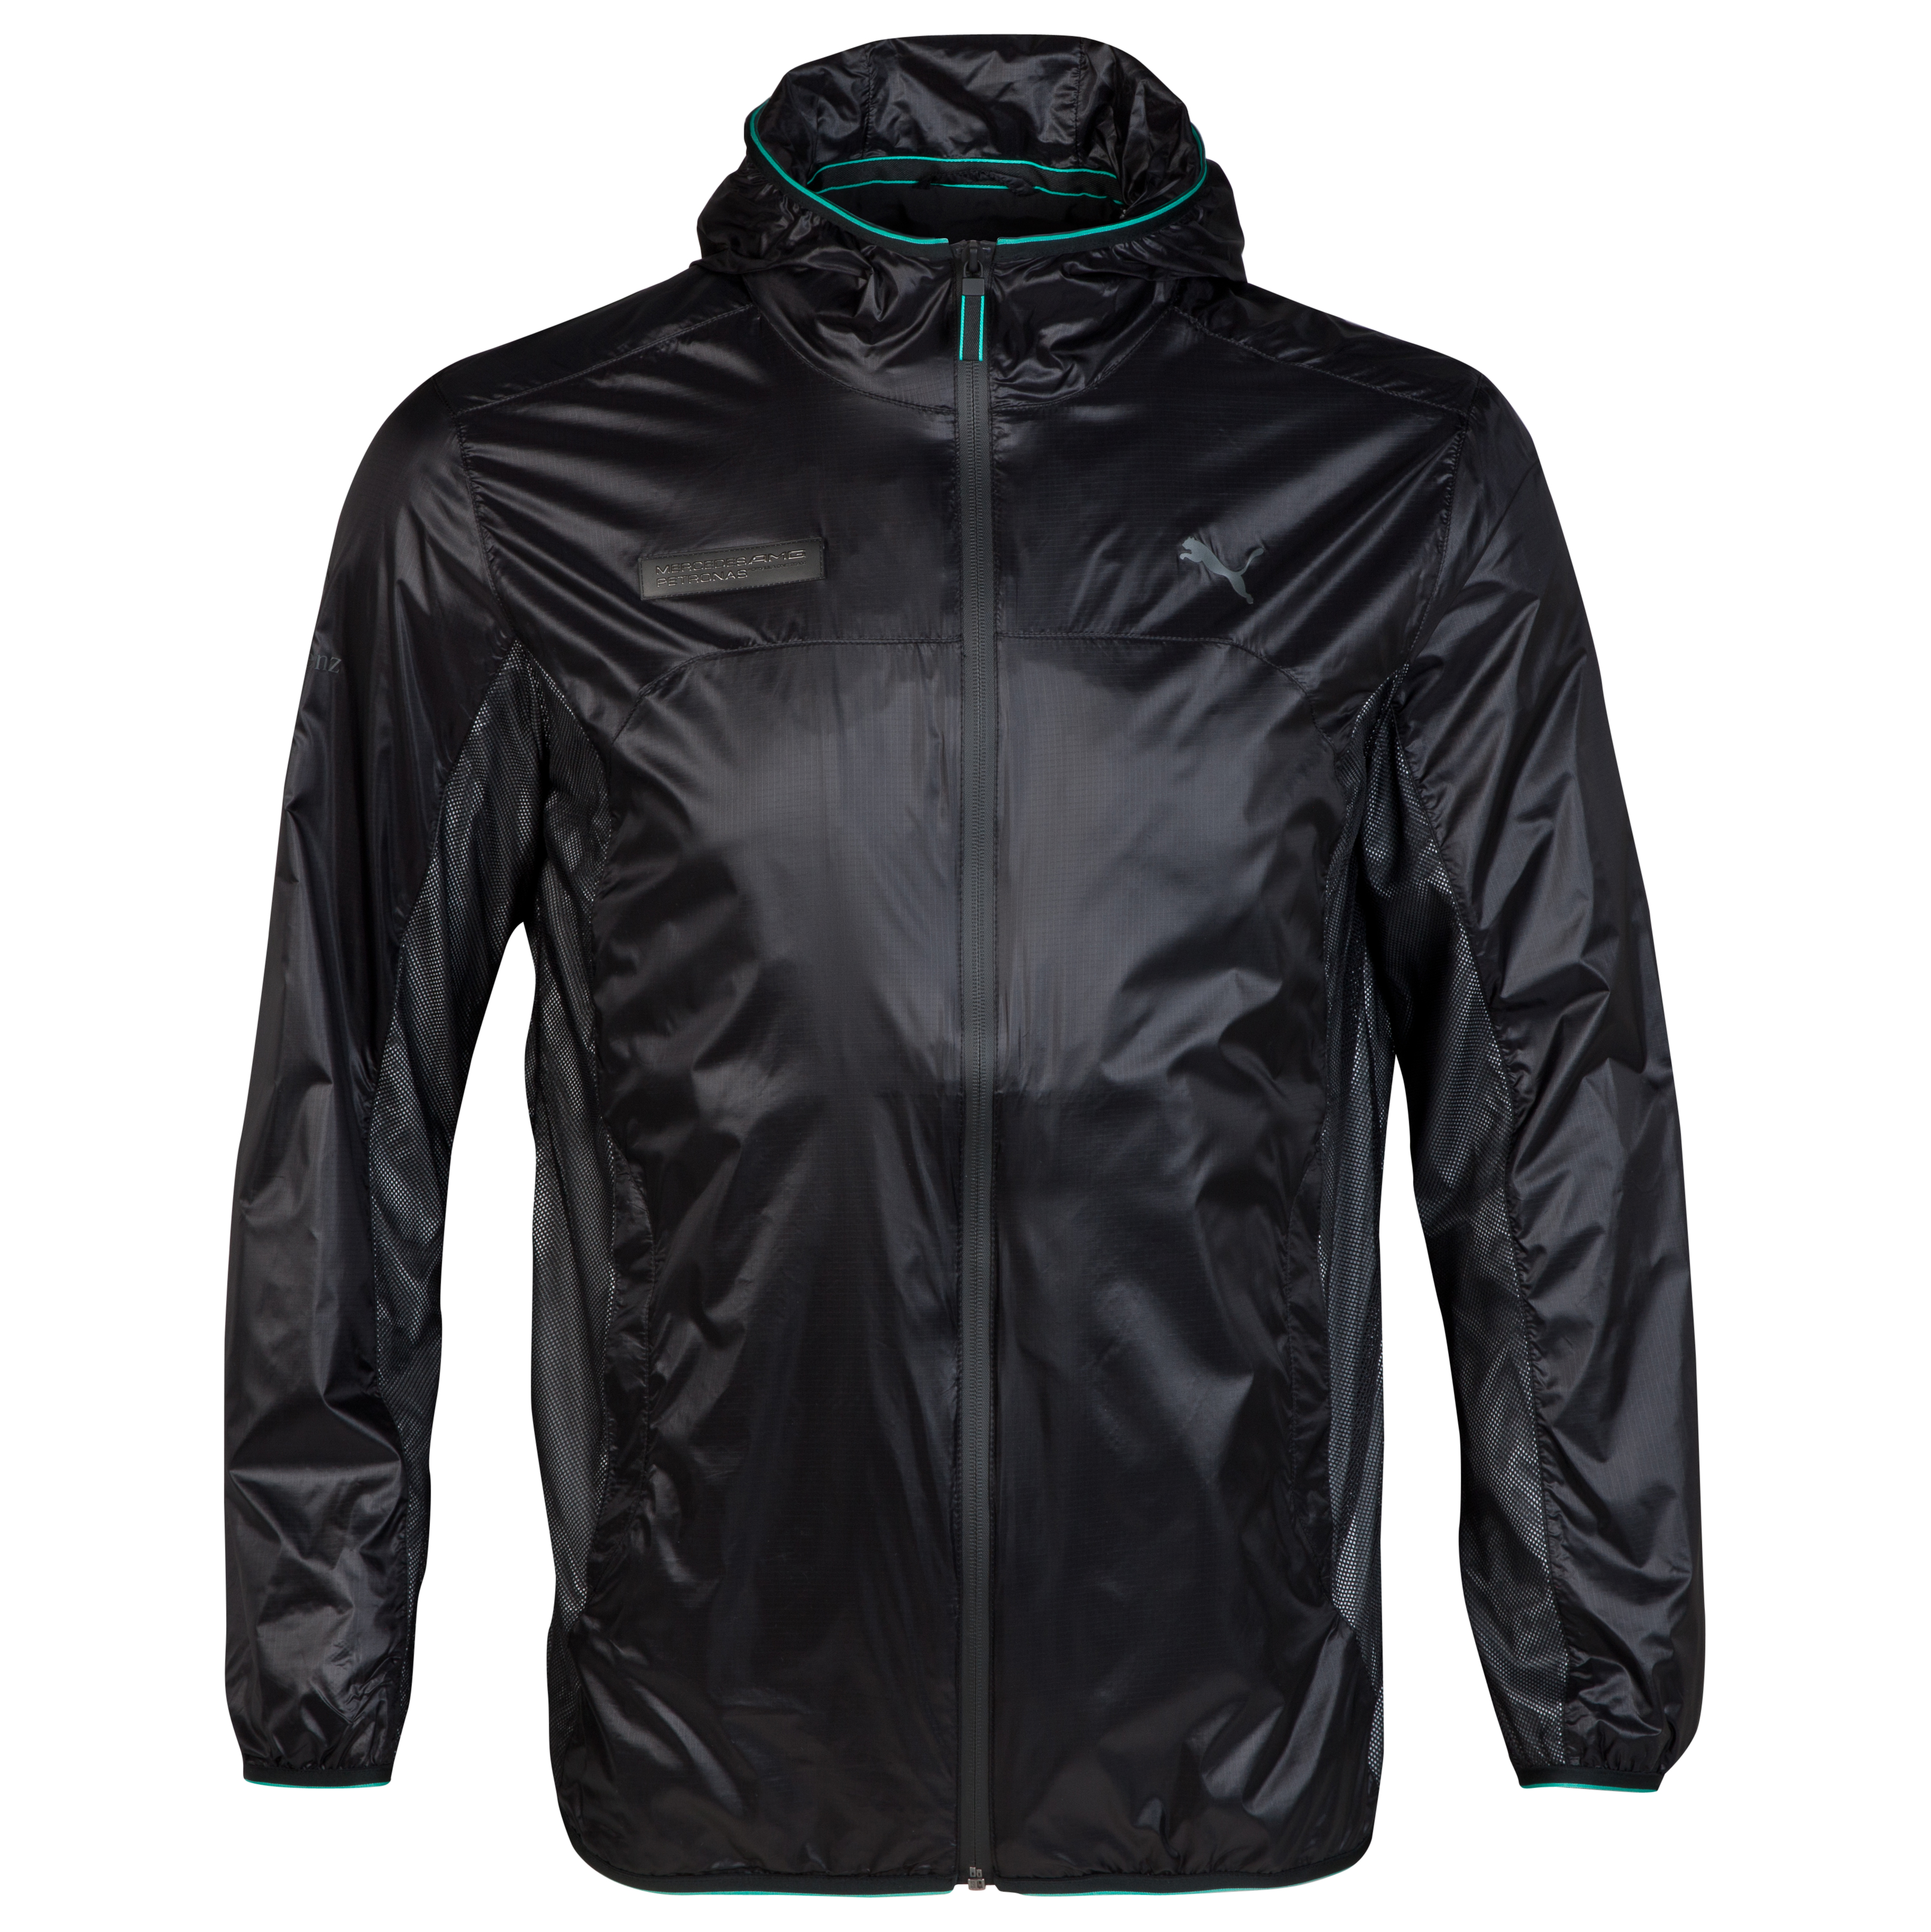 Mercedes AMG PETRONAS Lightweight Jacket Black